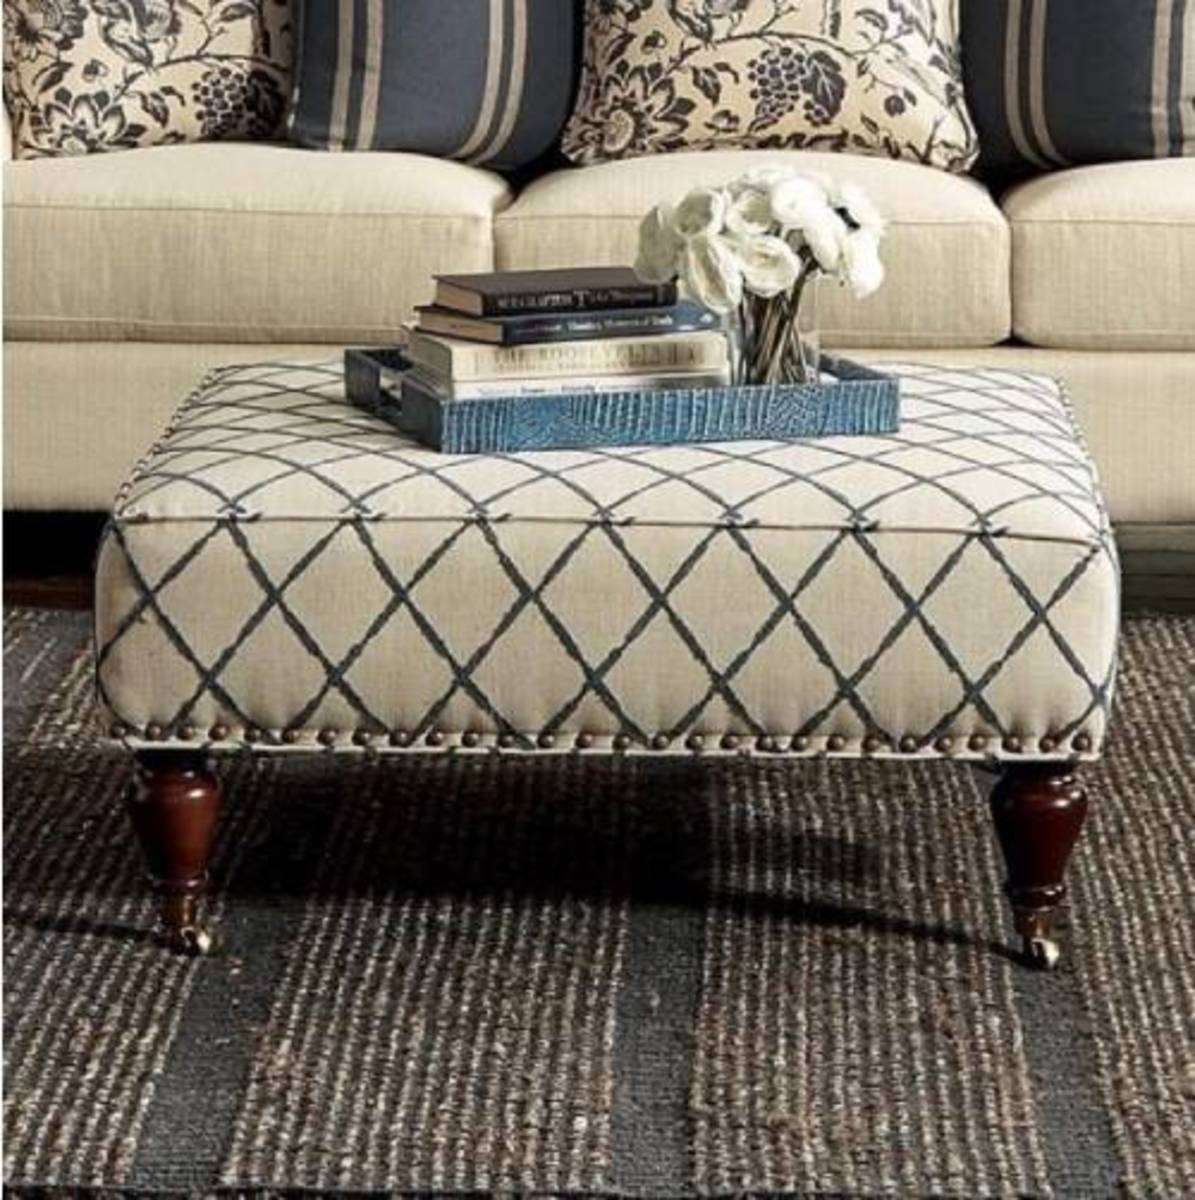 Make an upholstered storage ottoman out of  the coffee table.